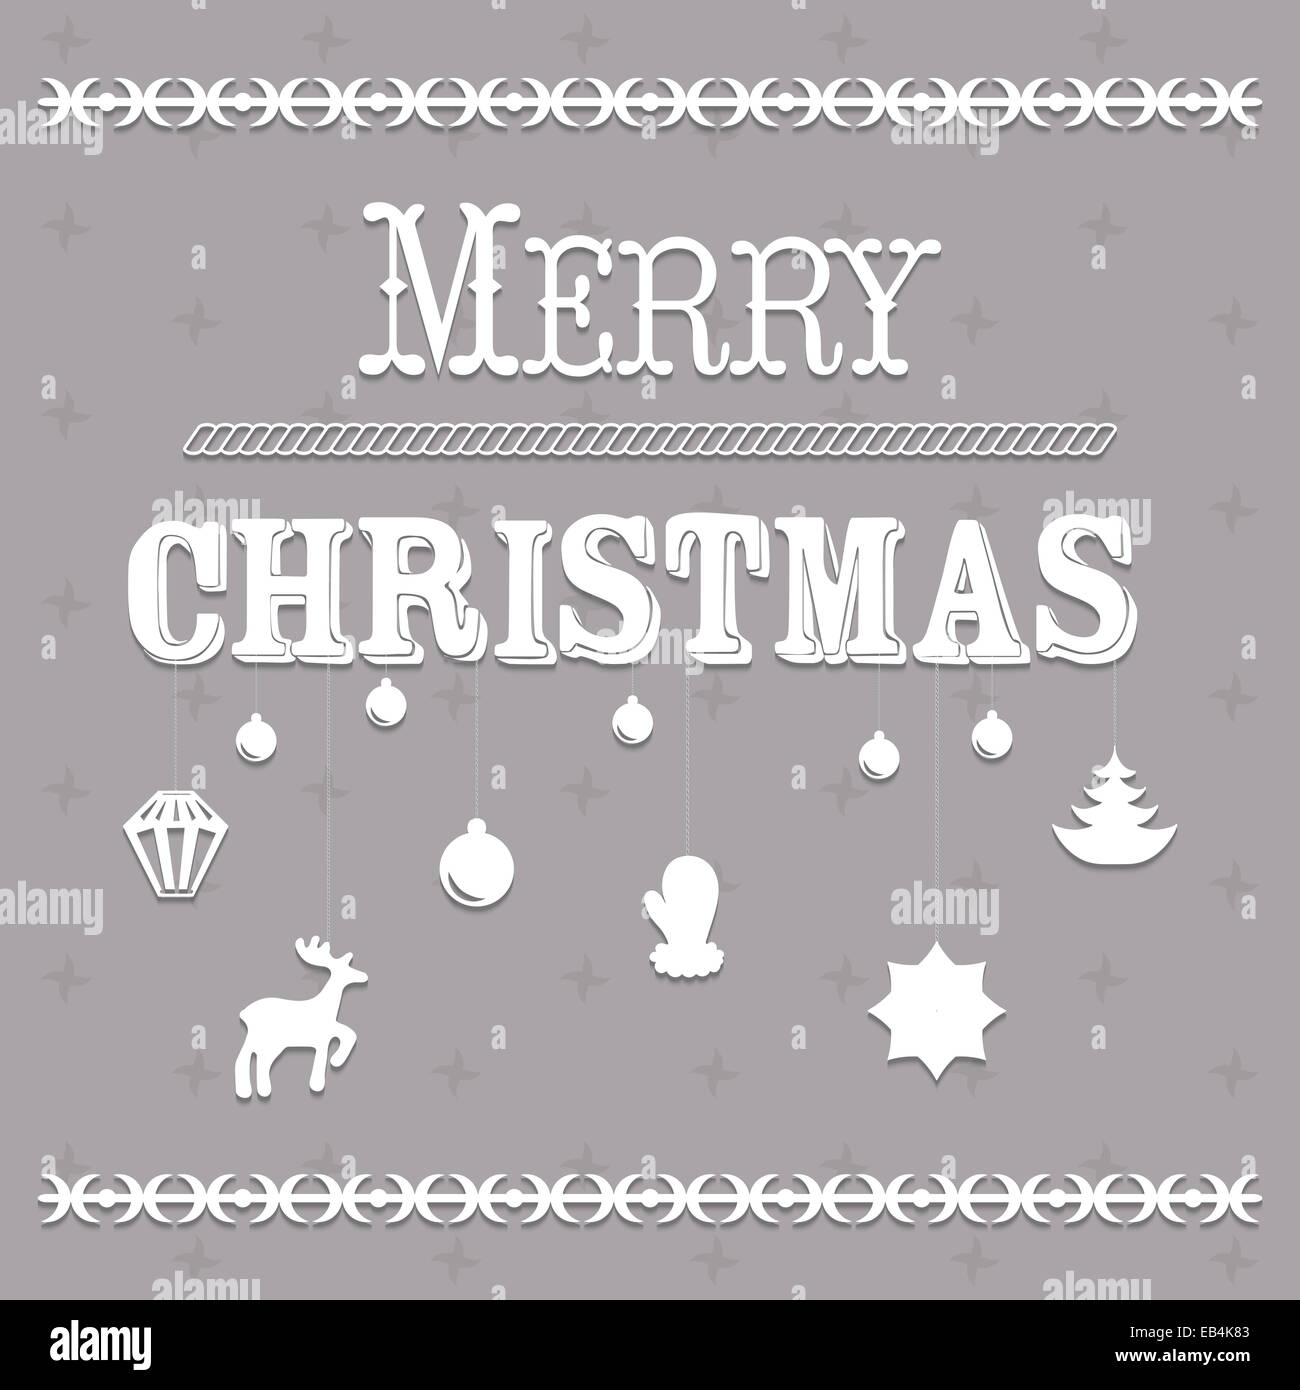 Typographic Christmas text and Design illustration - Stock Image